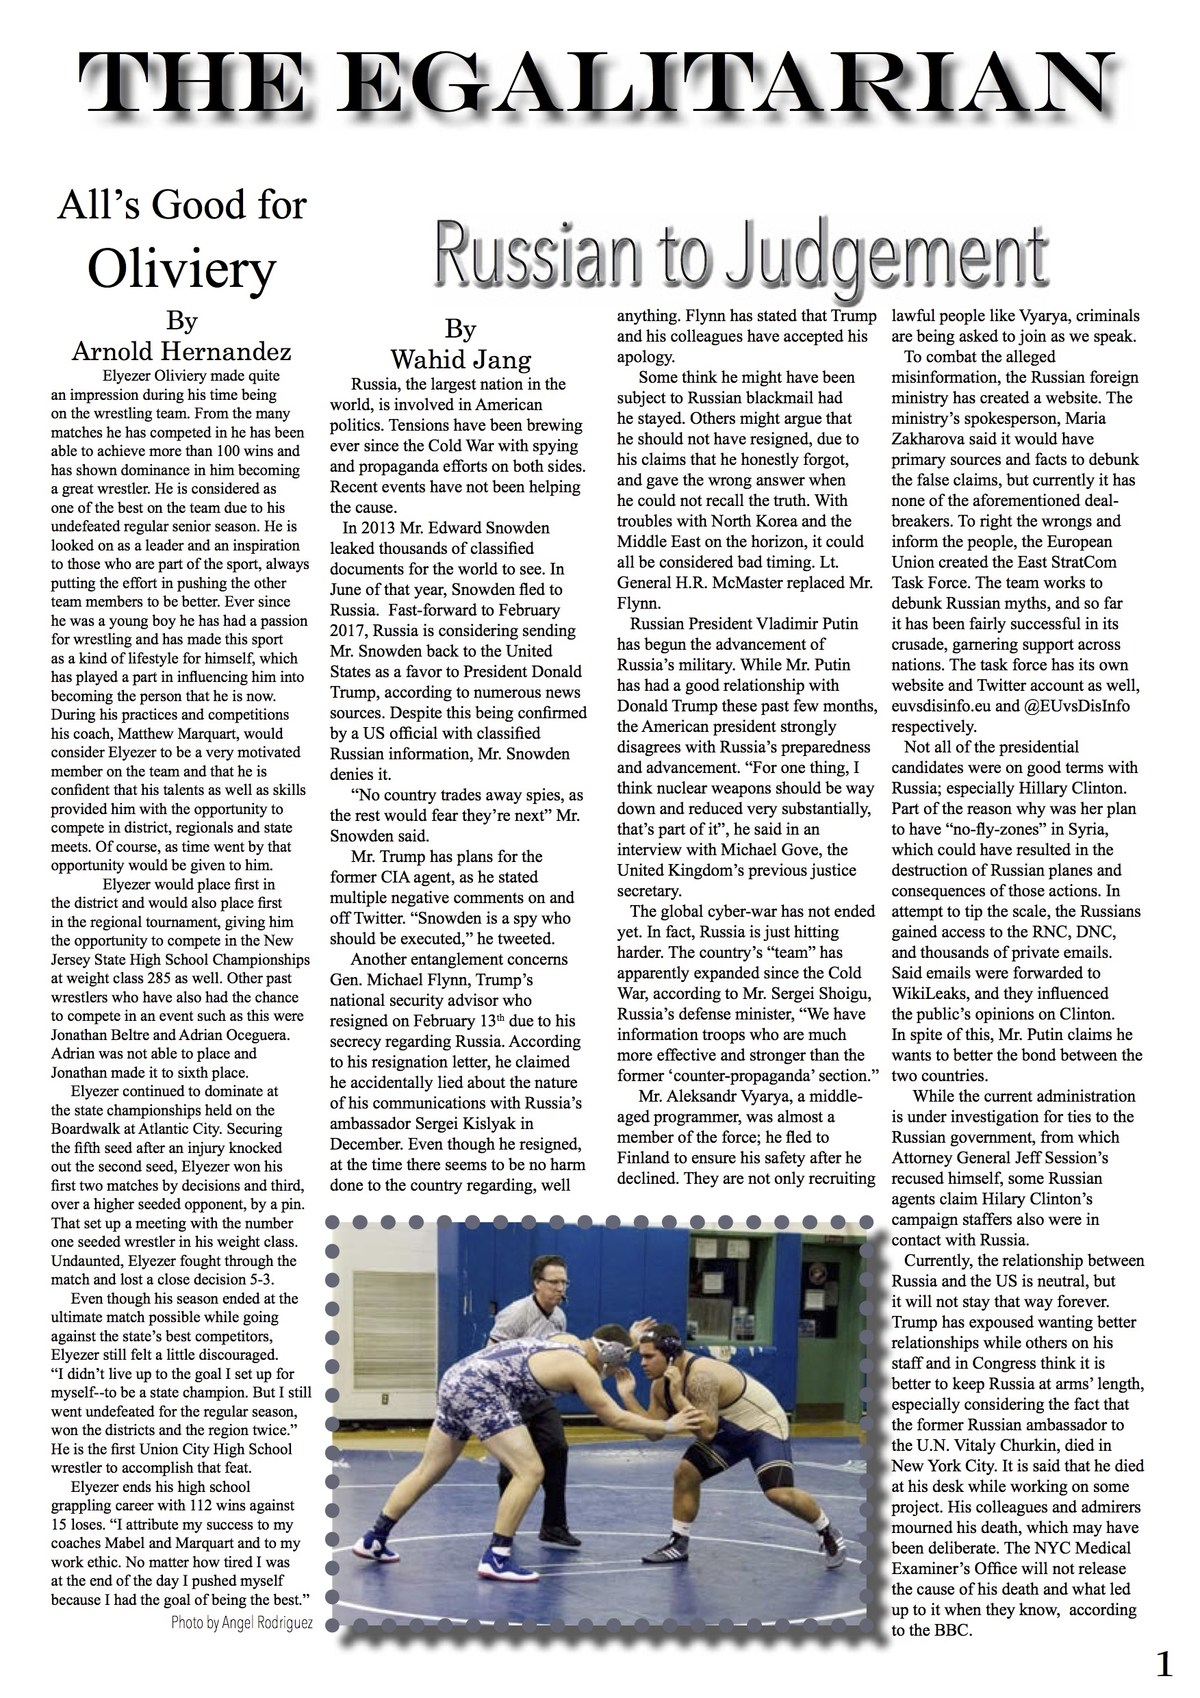 egalitarian wrestling to rusian judgement edition